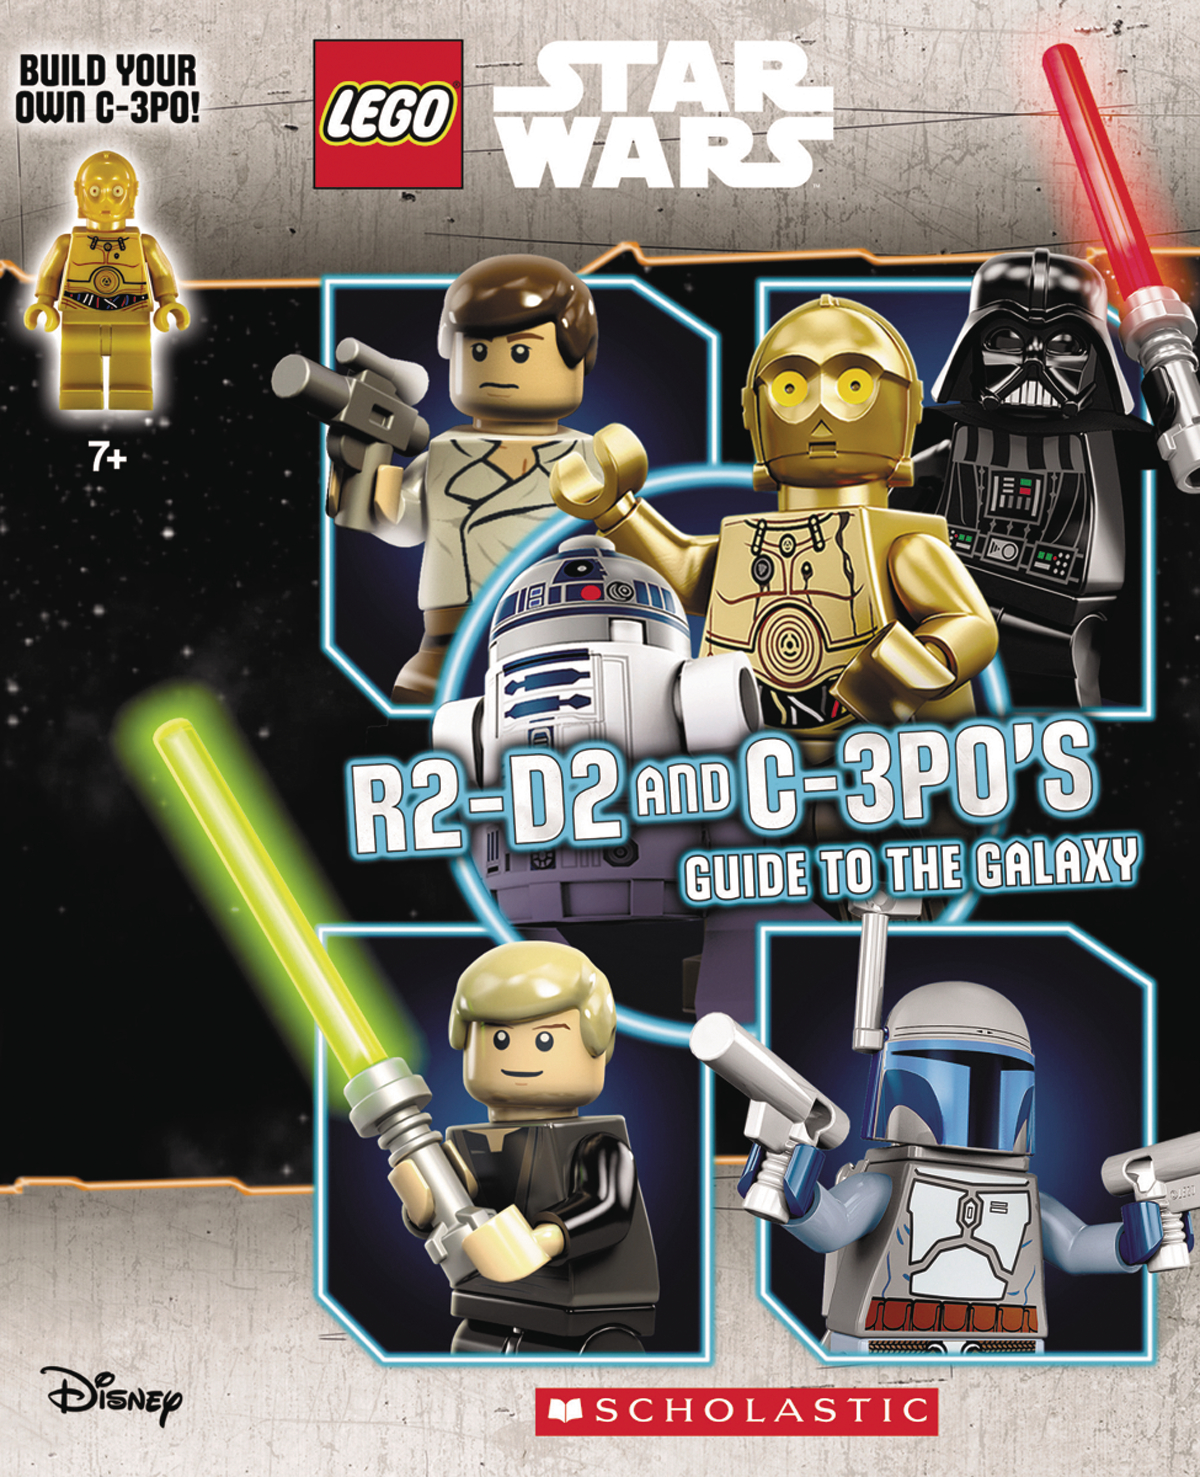 LEGO STAR WARS R2 D2 & C-3P0S GUIDE TO GALAXY HC